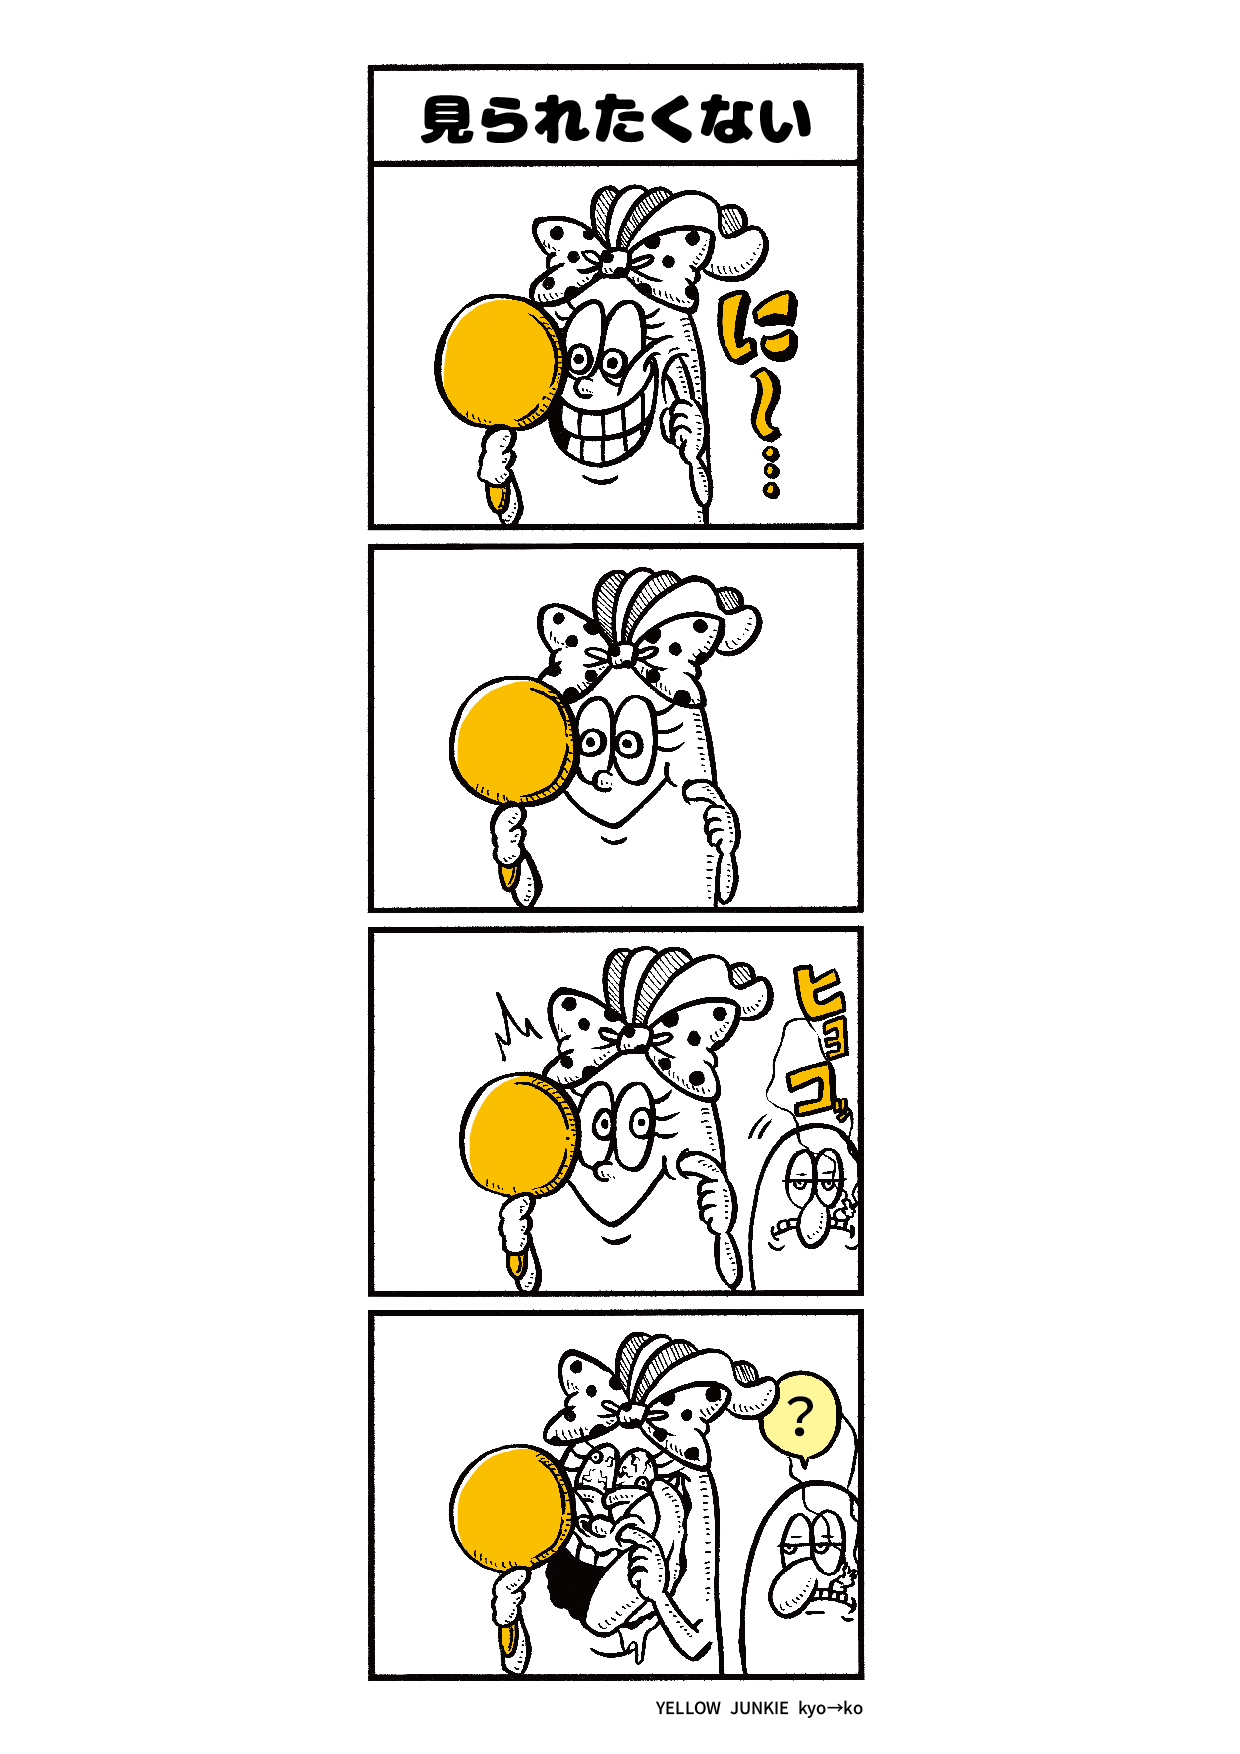 YELLOW JUNKIE「22話:見られたくない」